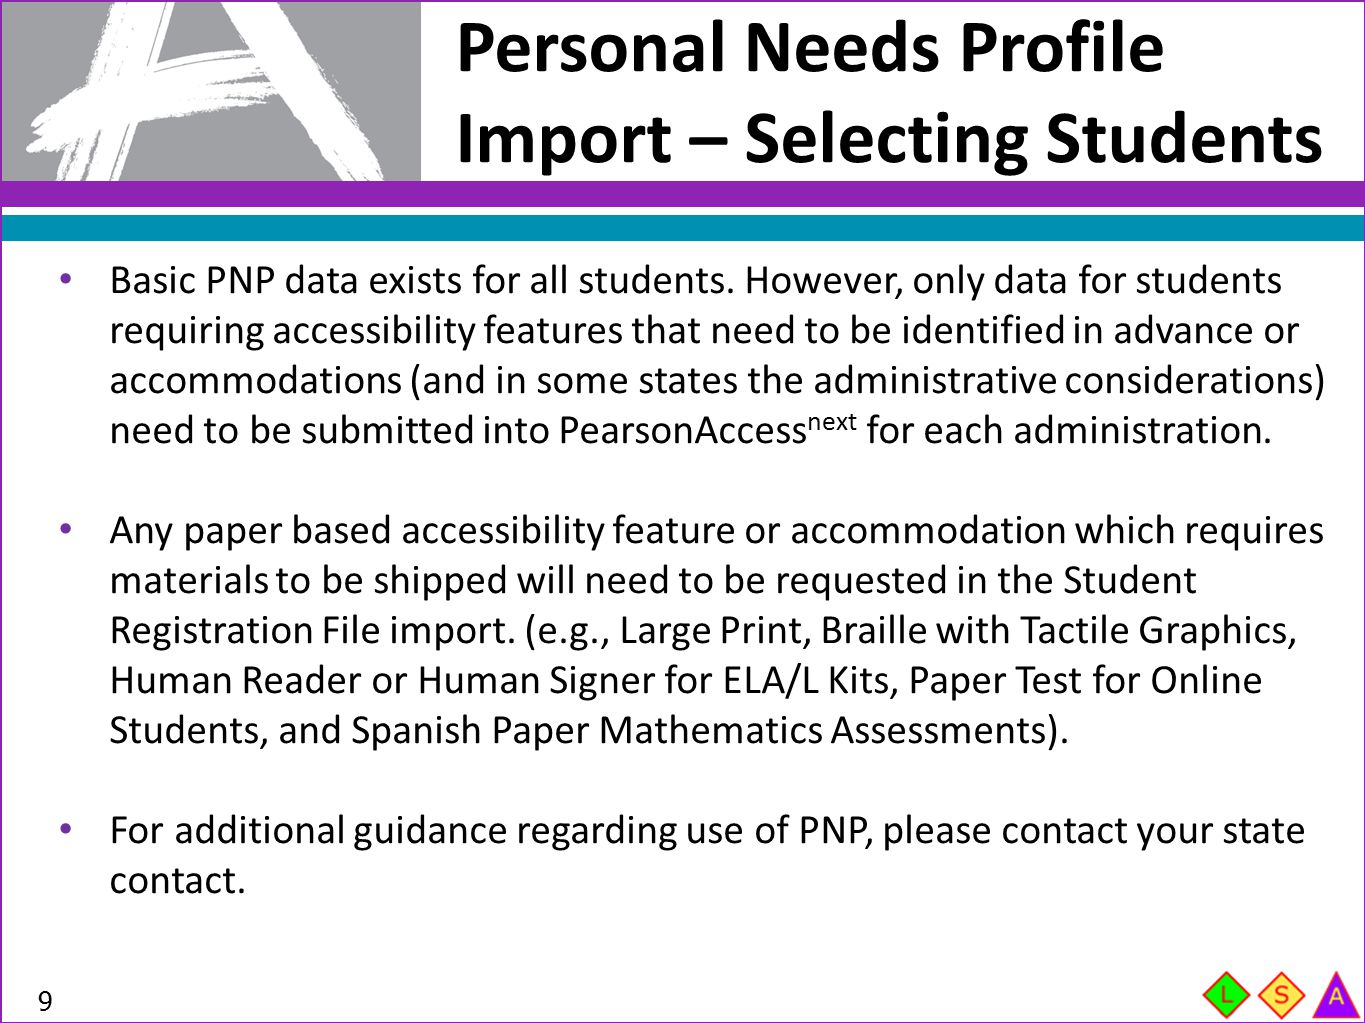 Personal Needs Profile Import – Selecting Students